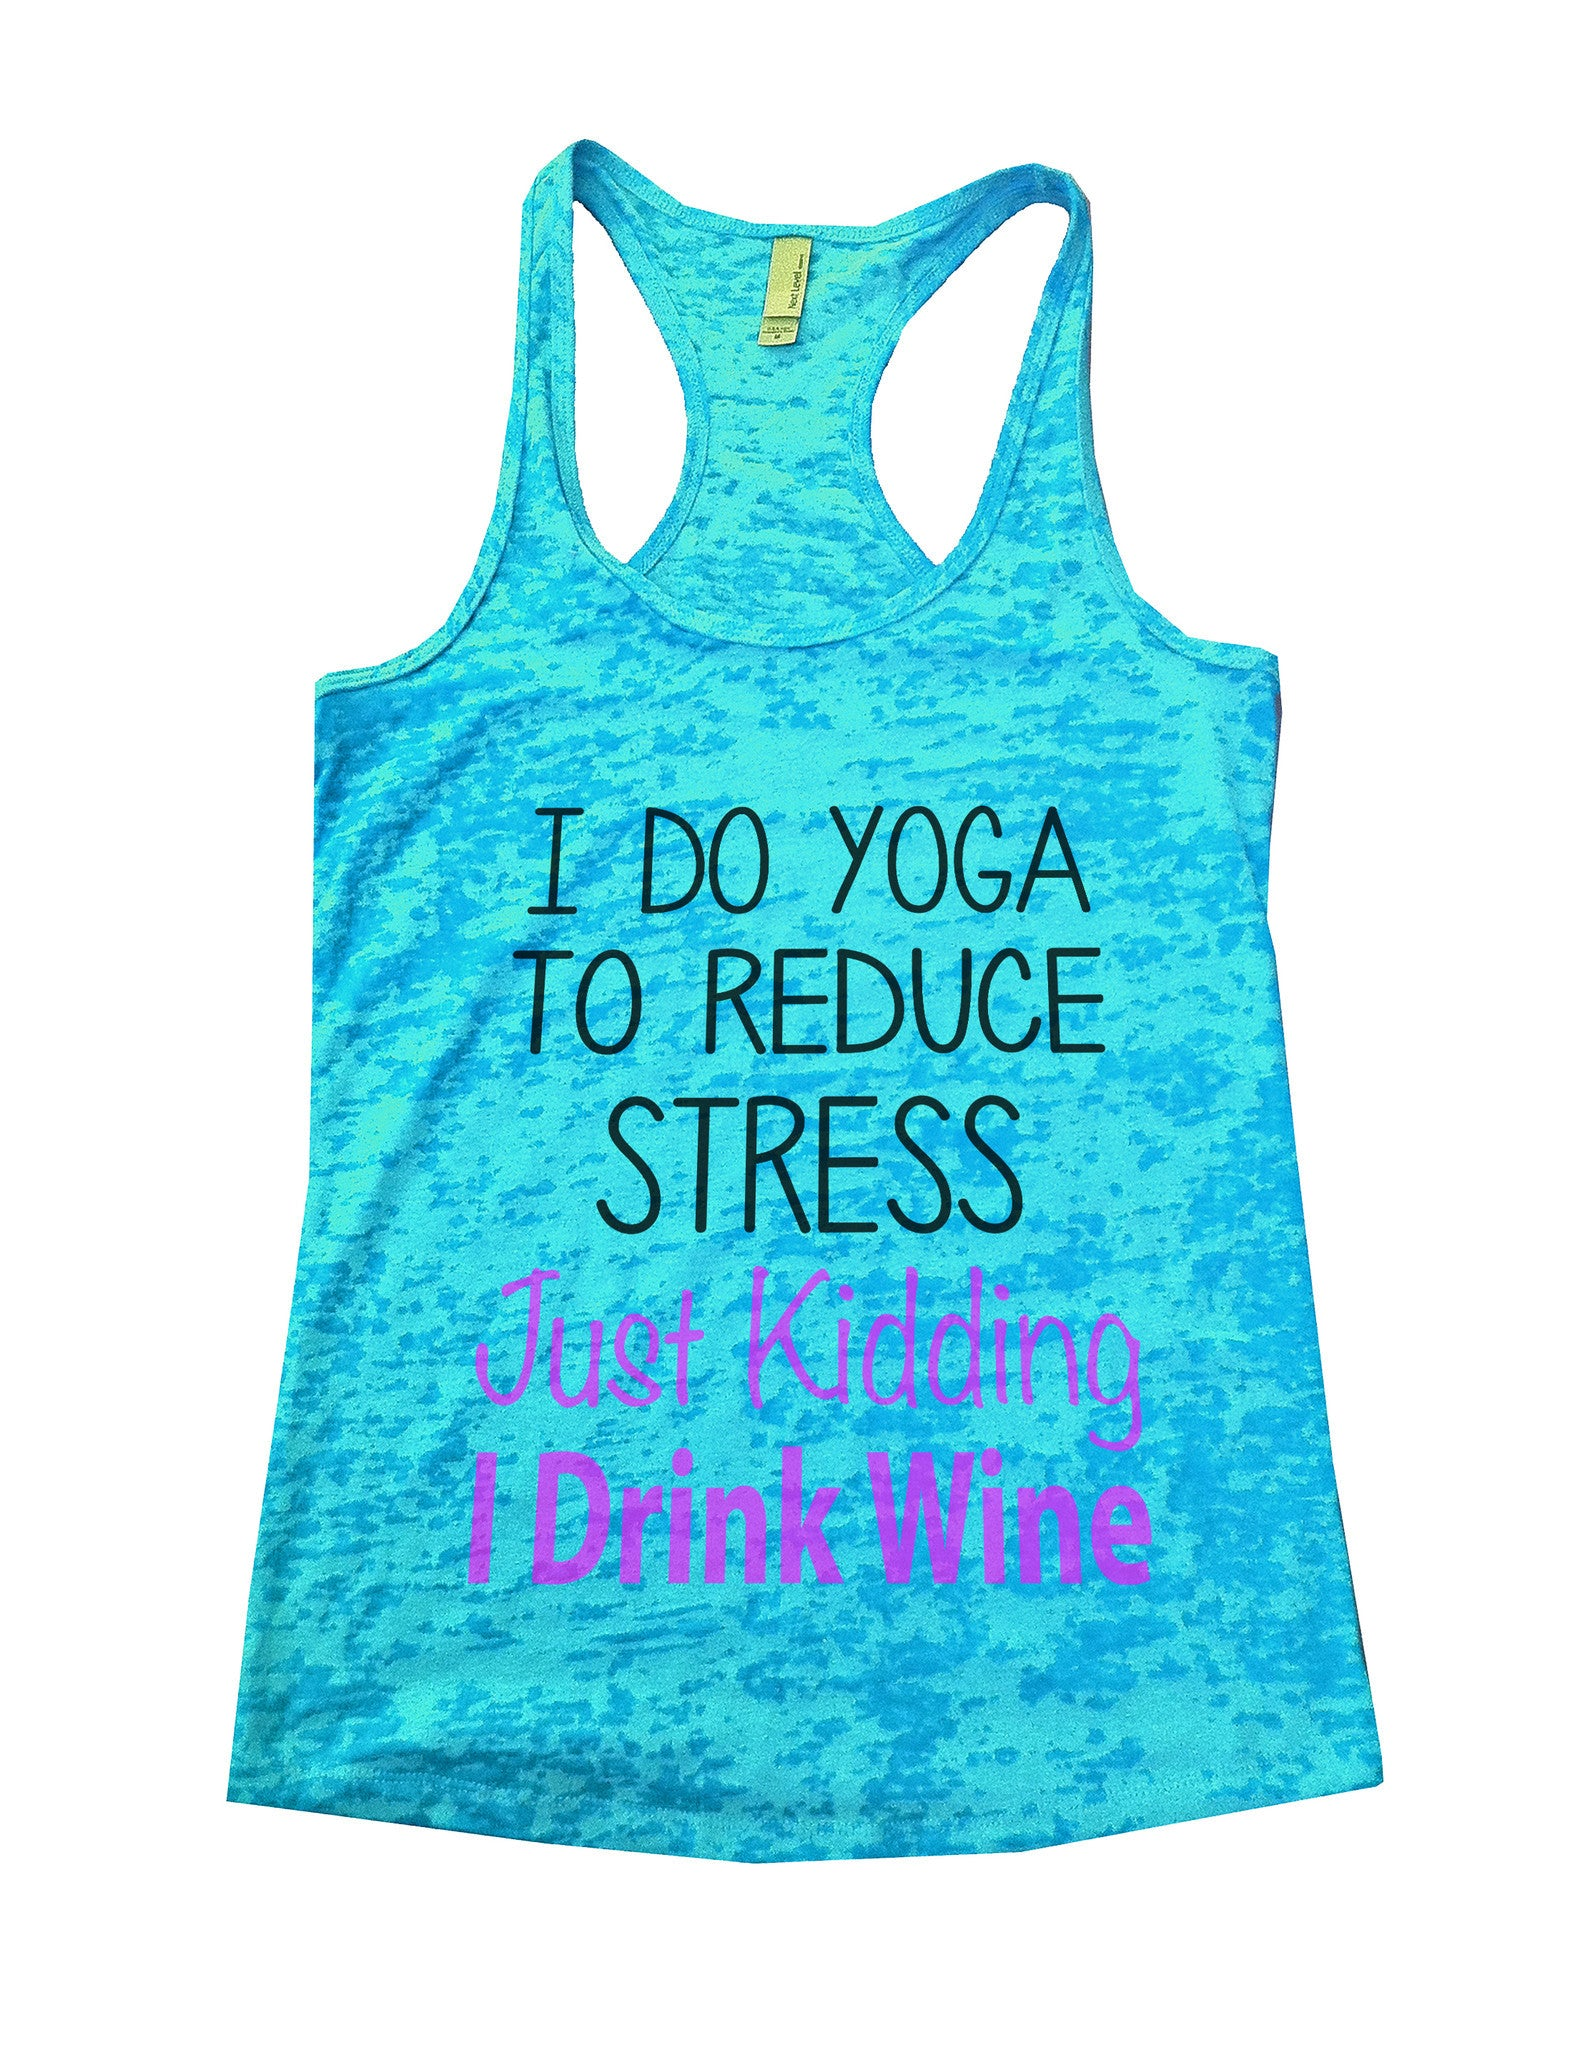 I Do Yoga To Reduce Stress Just Kidding I Drink Wine Burnout Tank Top By BurnoutTankTops.com - 627 - Funny Shirts Tank Tops Burnouts and Triblends  - 1